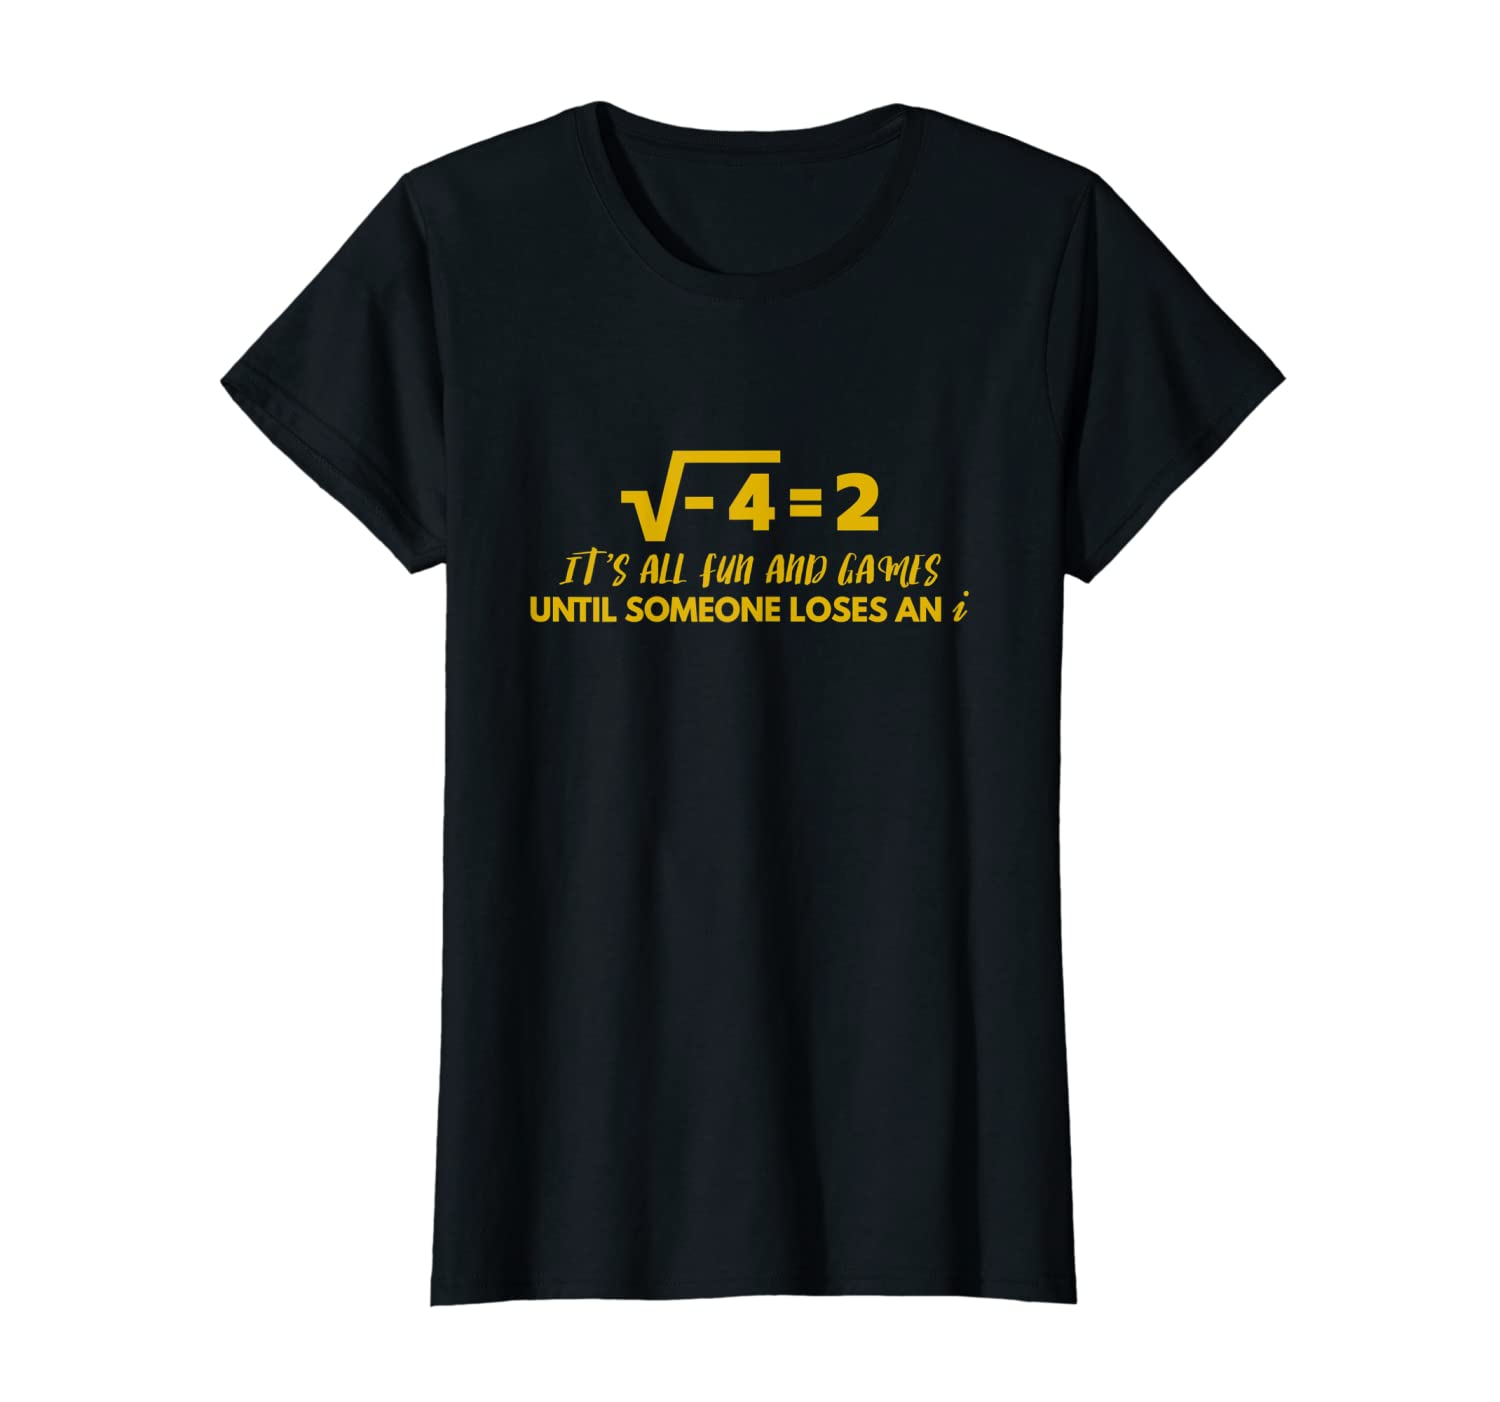 All Fun And Games Until Someone Loses An i – Funny Math T-Shirt